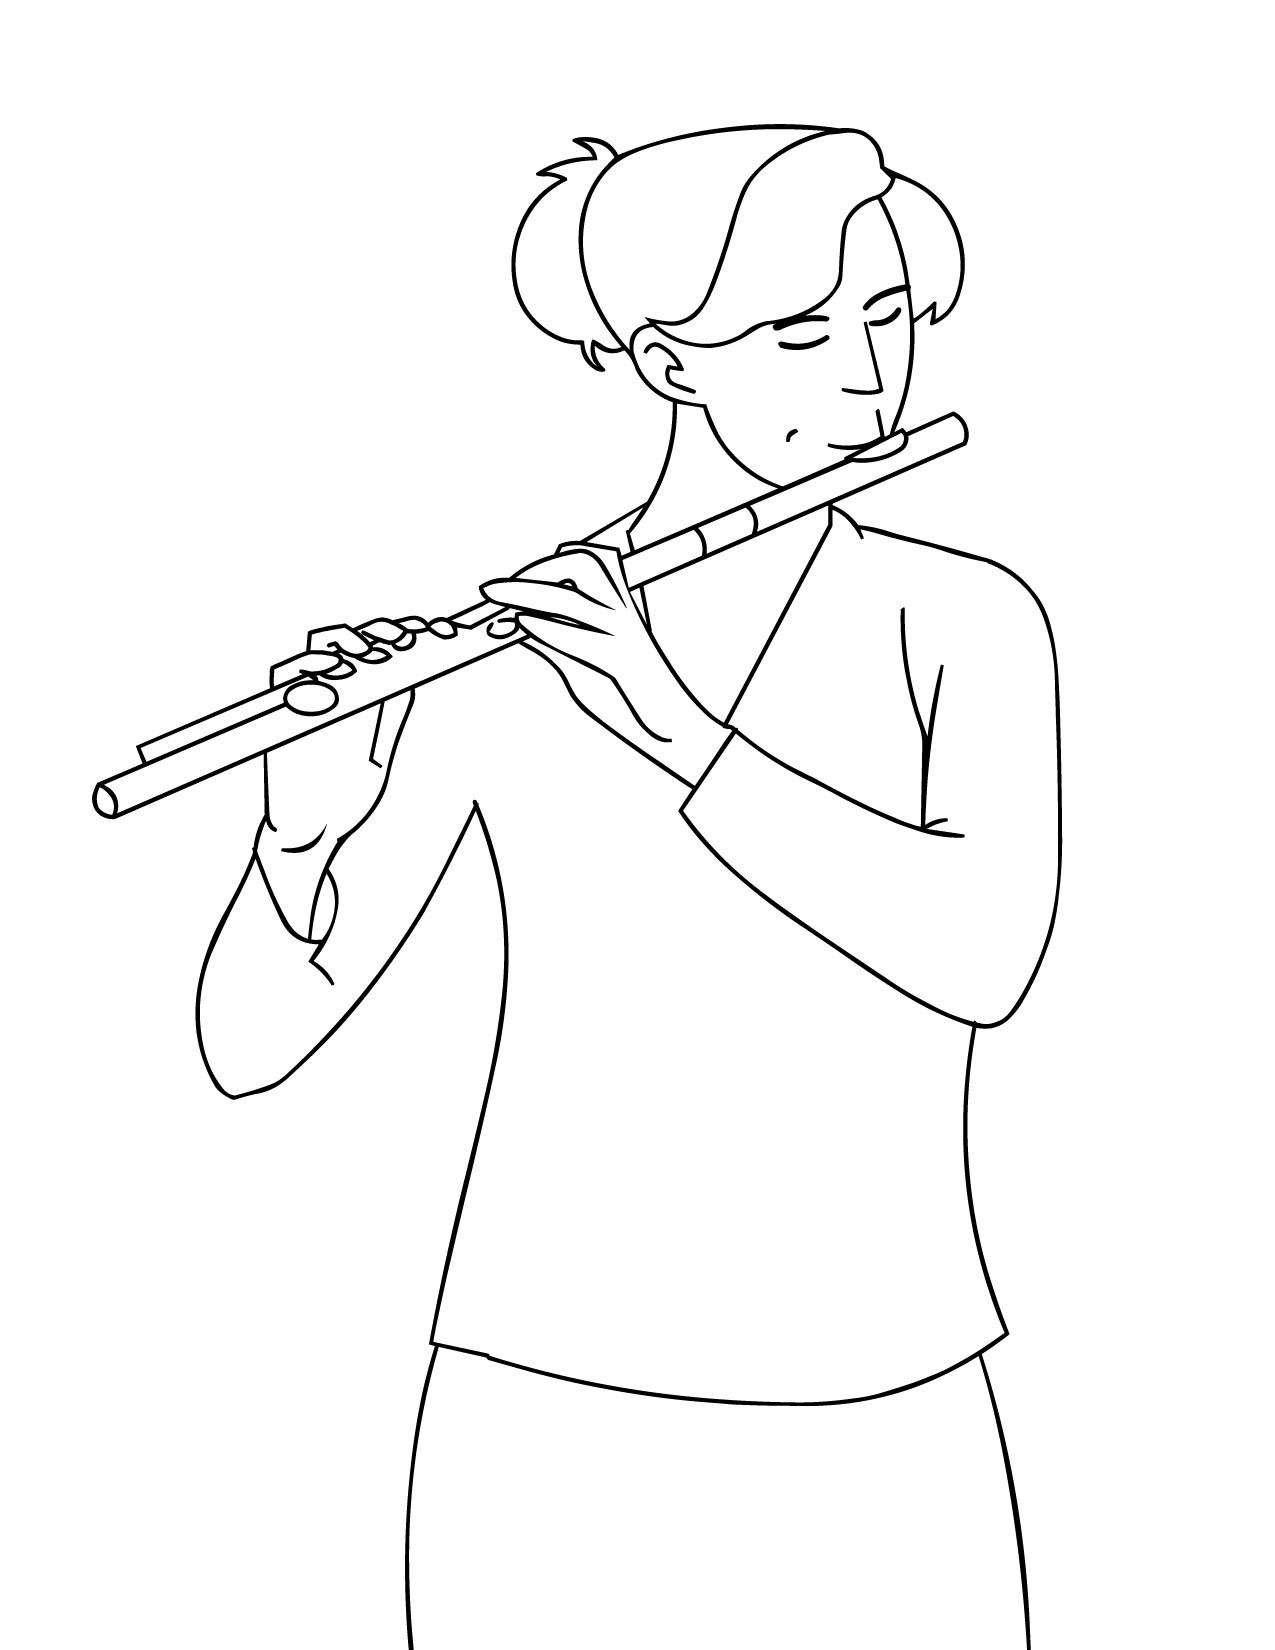 Woman Playing Flute Coloring Page